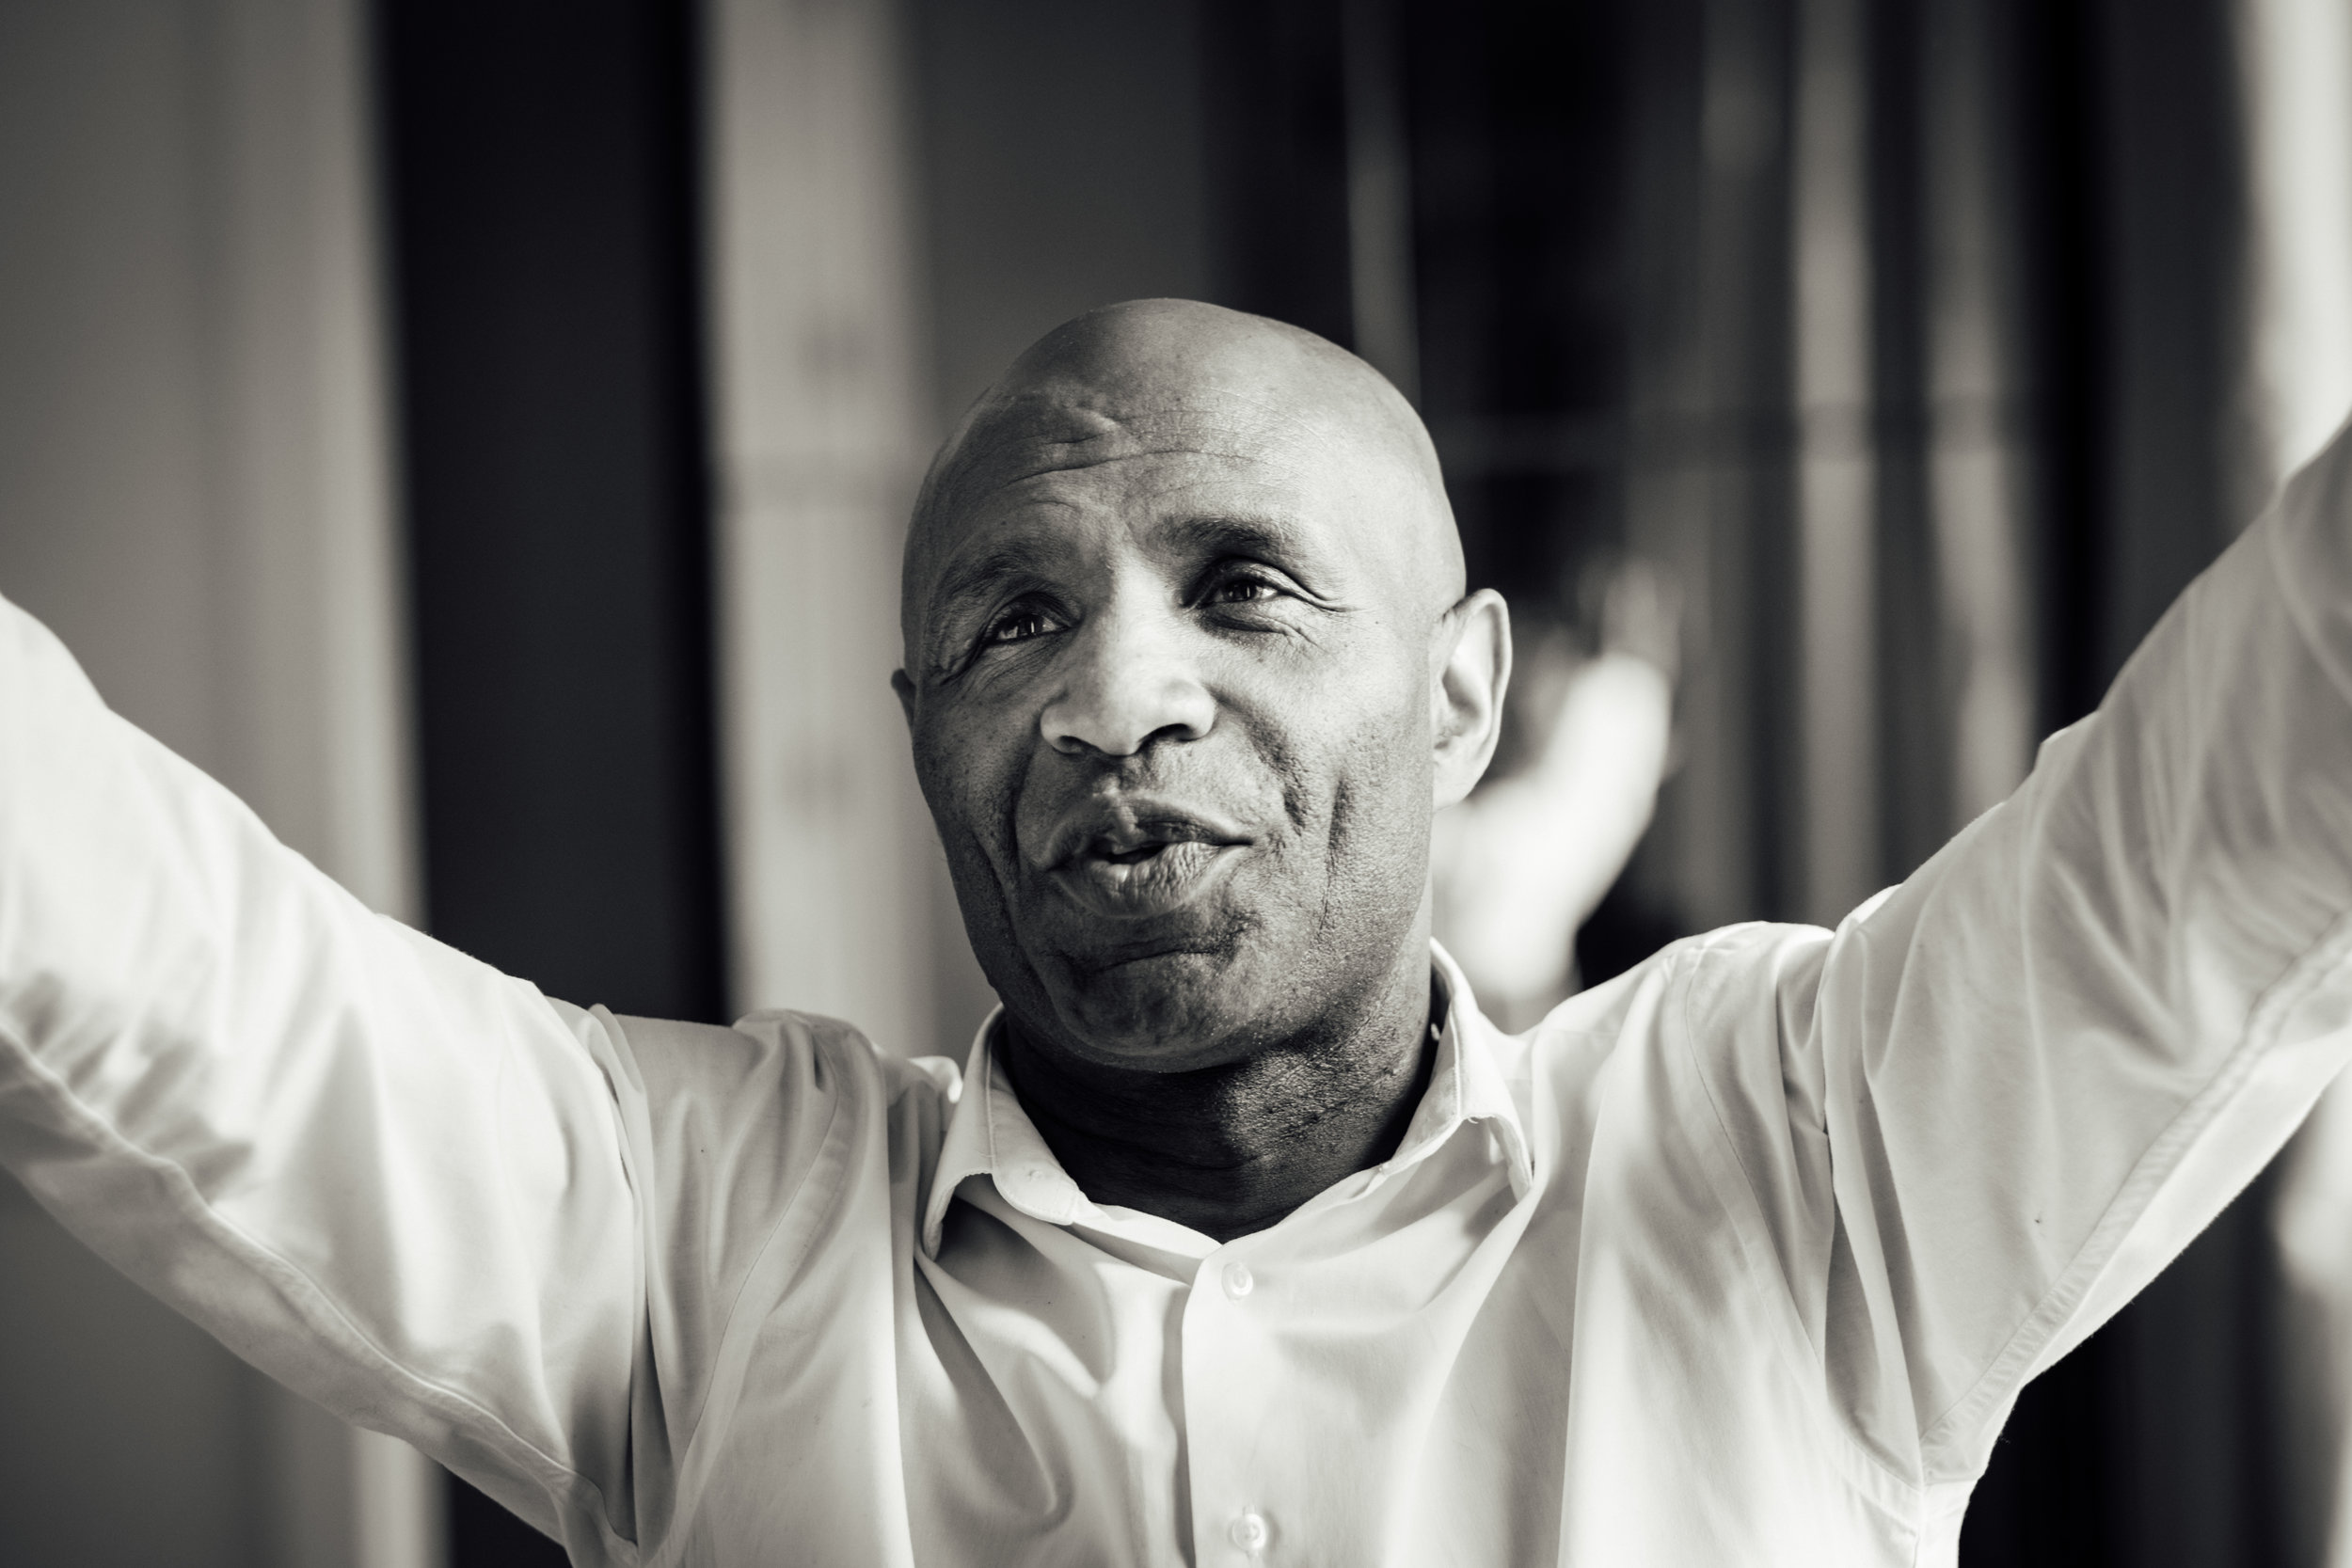 Former Watford, AC Milan and England striker, Luther Blissett photographed for an upcoming book